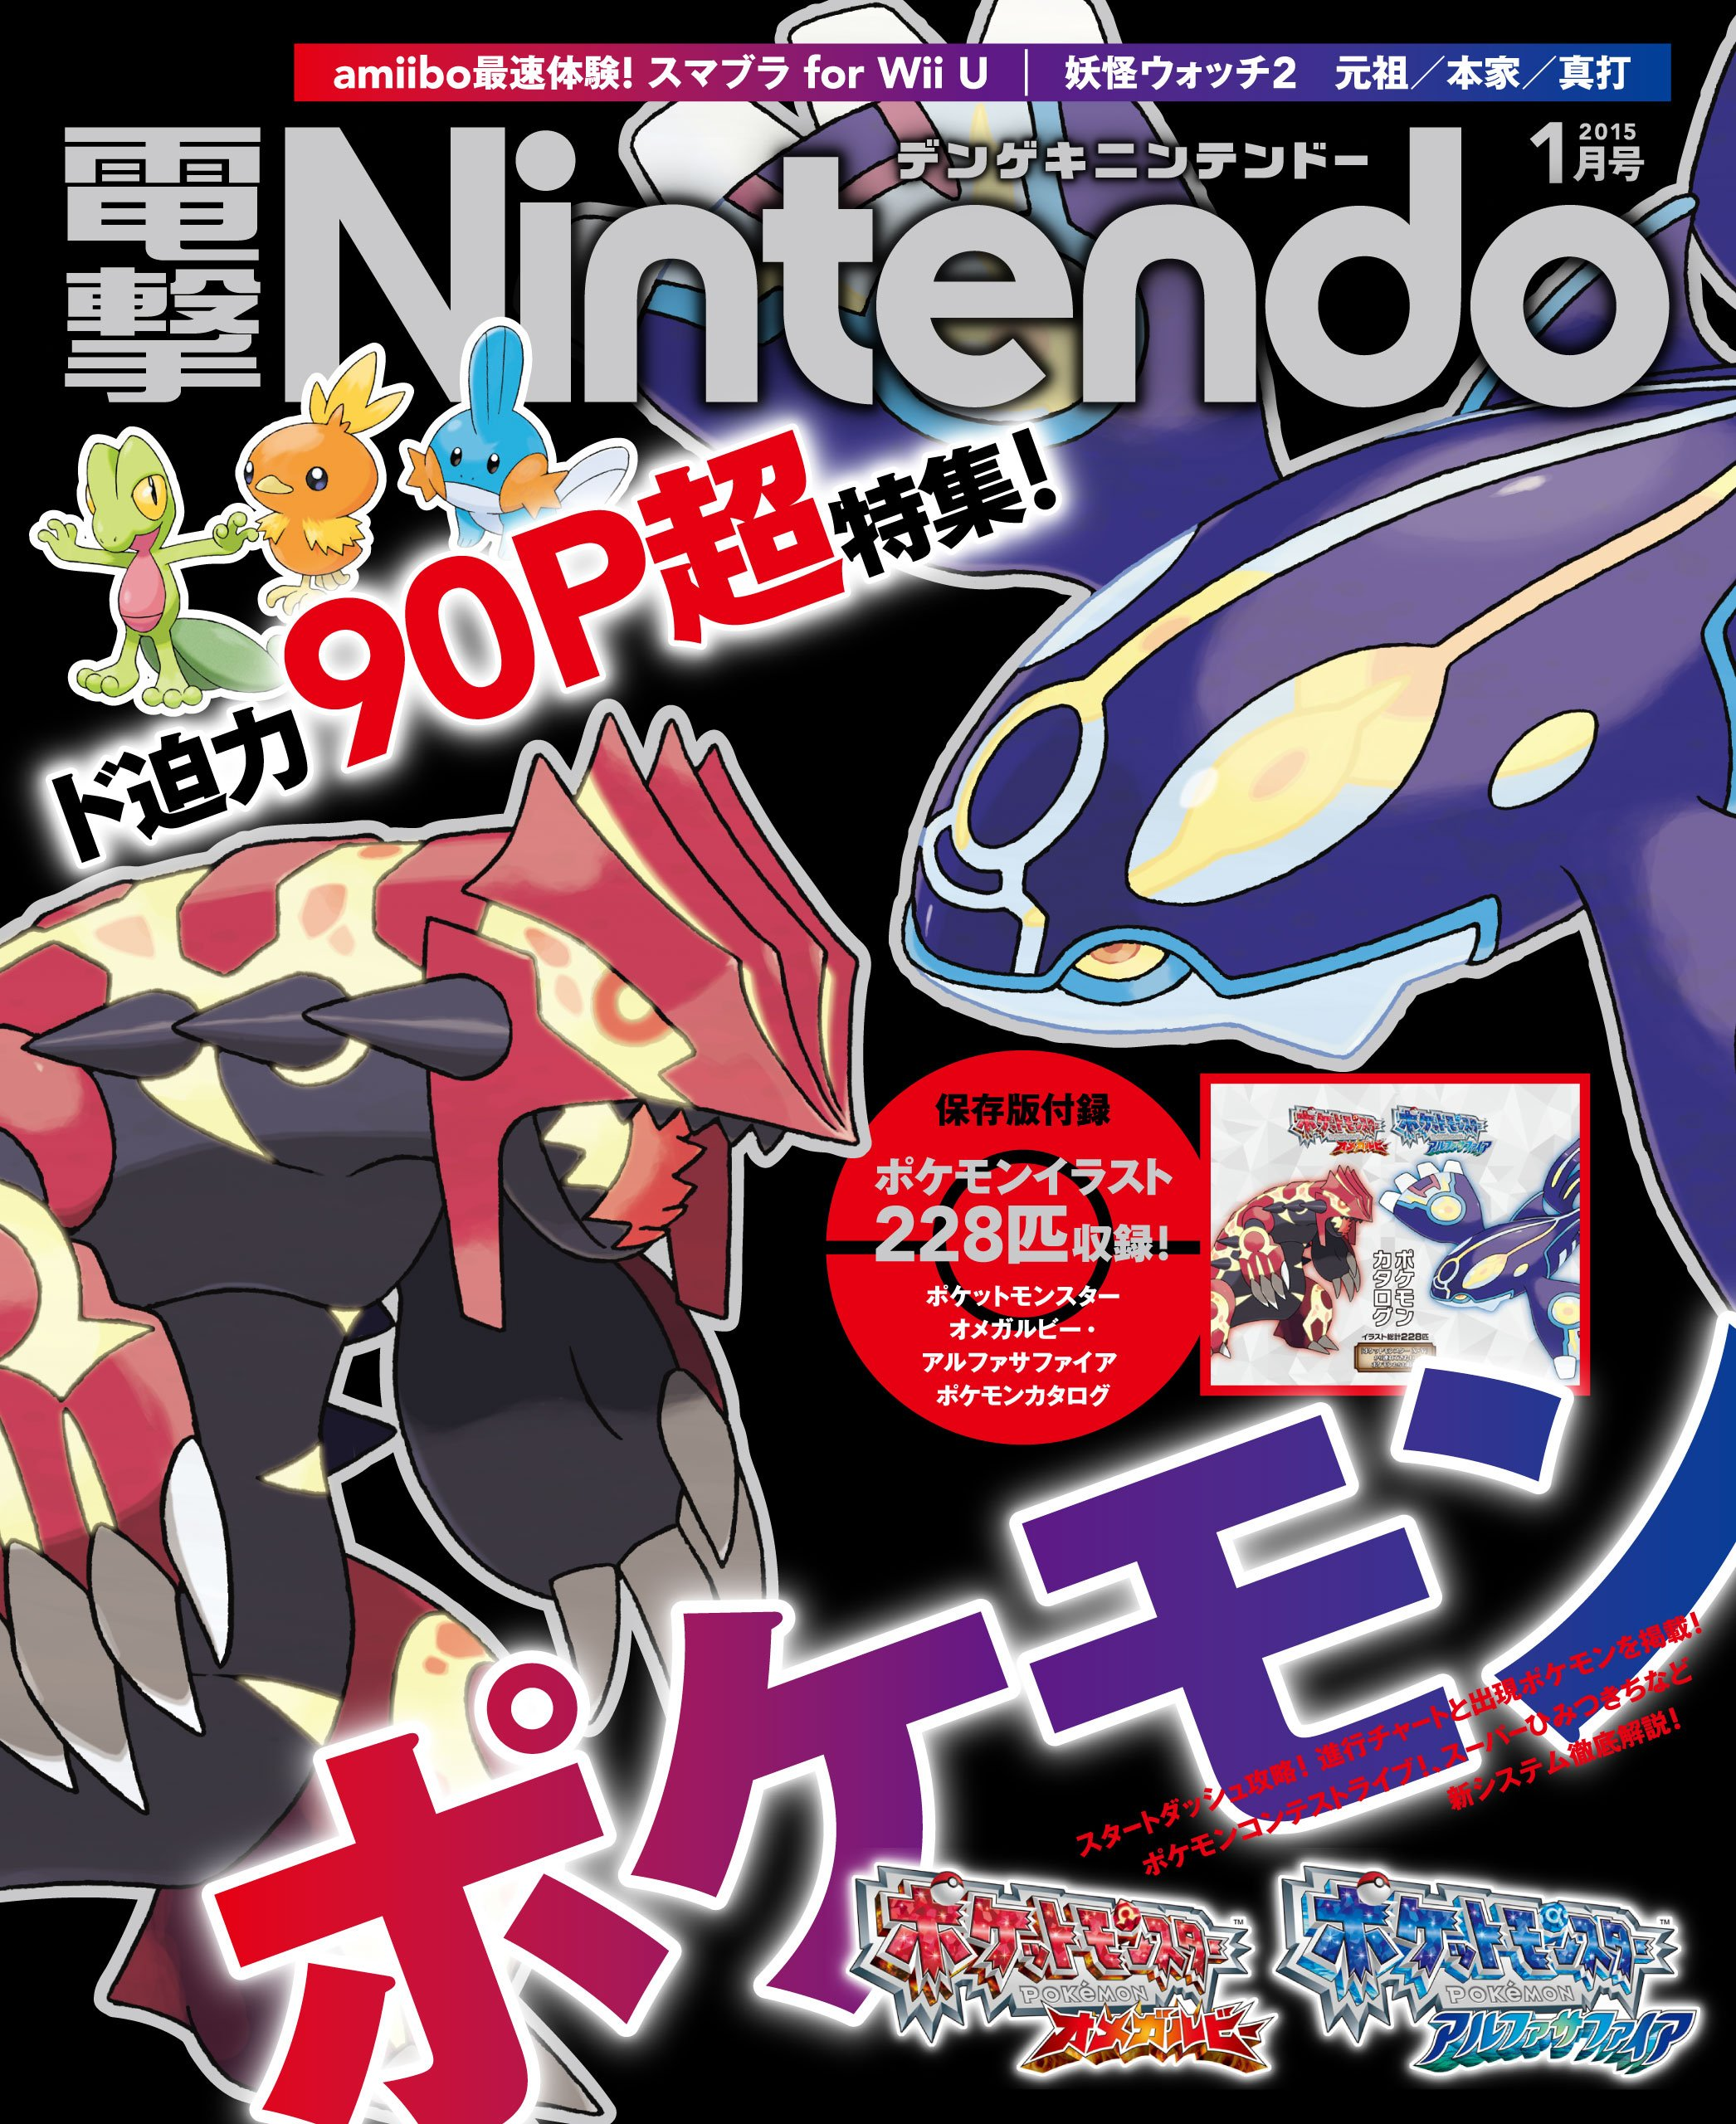 Dengeki Nintendo Issue 020 (January 2015)